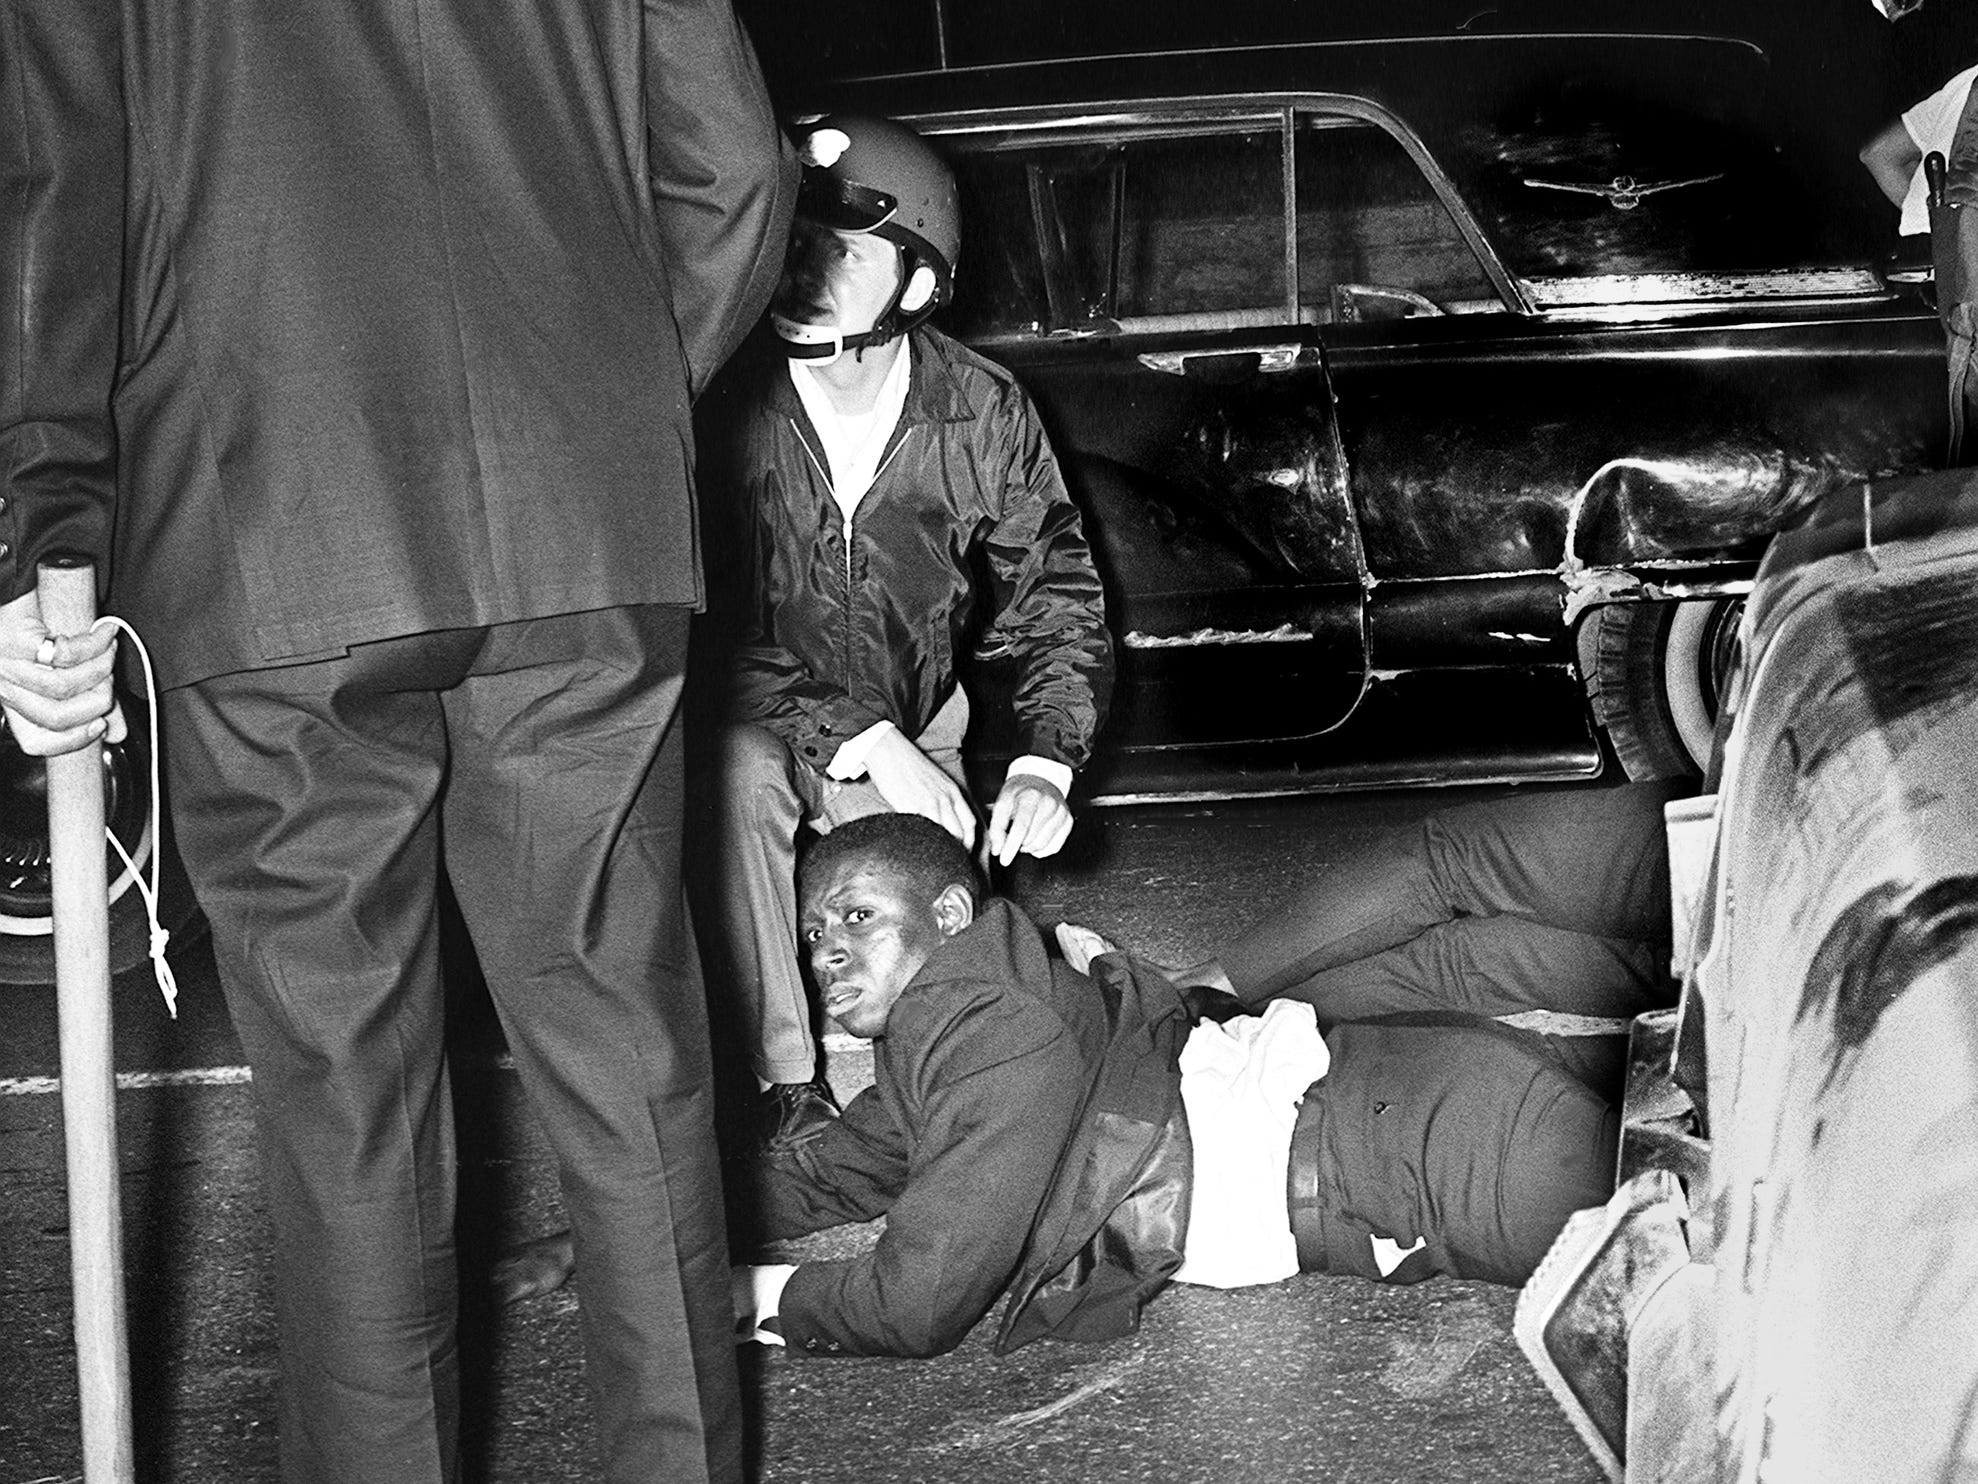 Metro police officers and occupants of a car duck bullets, which were fired by rioters at the Tennessee State University campus April 9, 1967. Rock throwing escalated to gunfire as violence erupted, sending mobs and riot police swarming through North Nashville's black community.